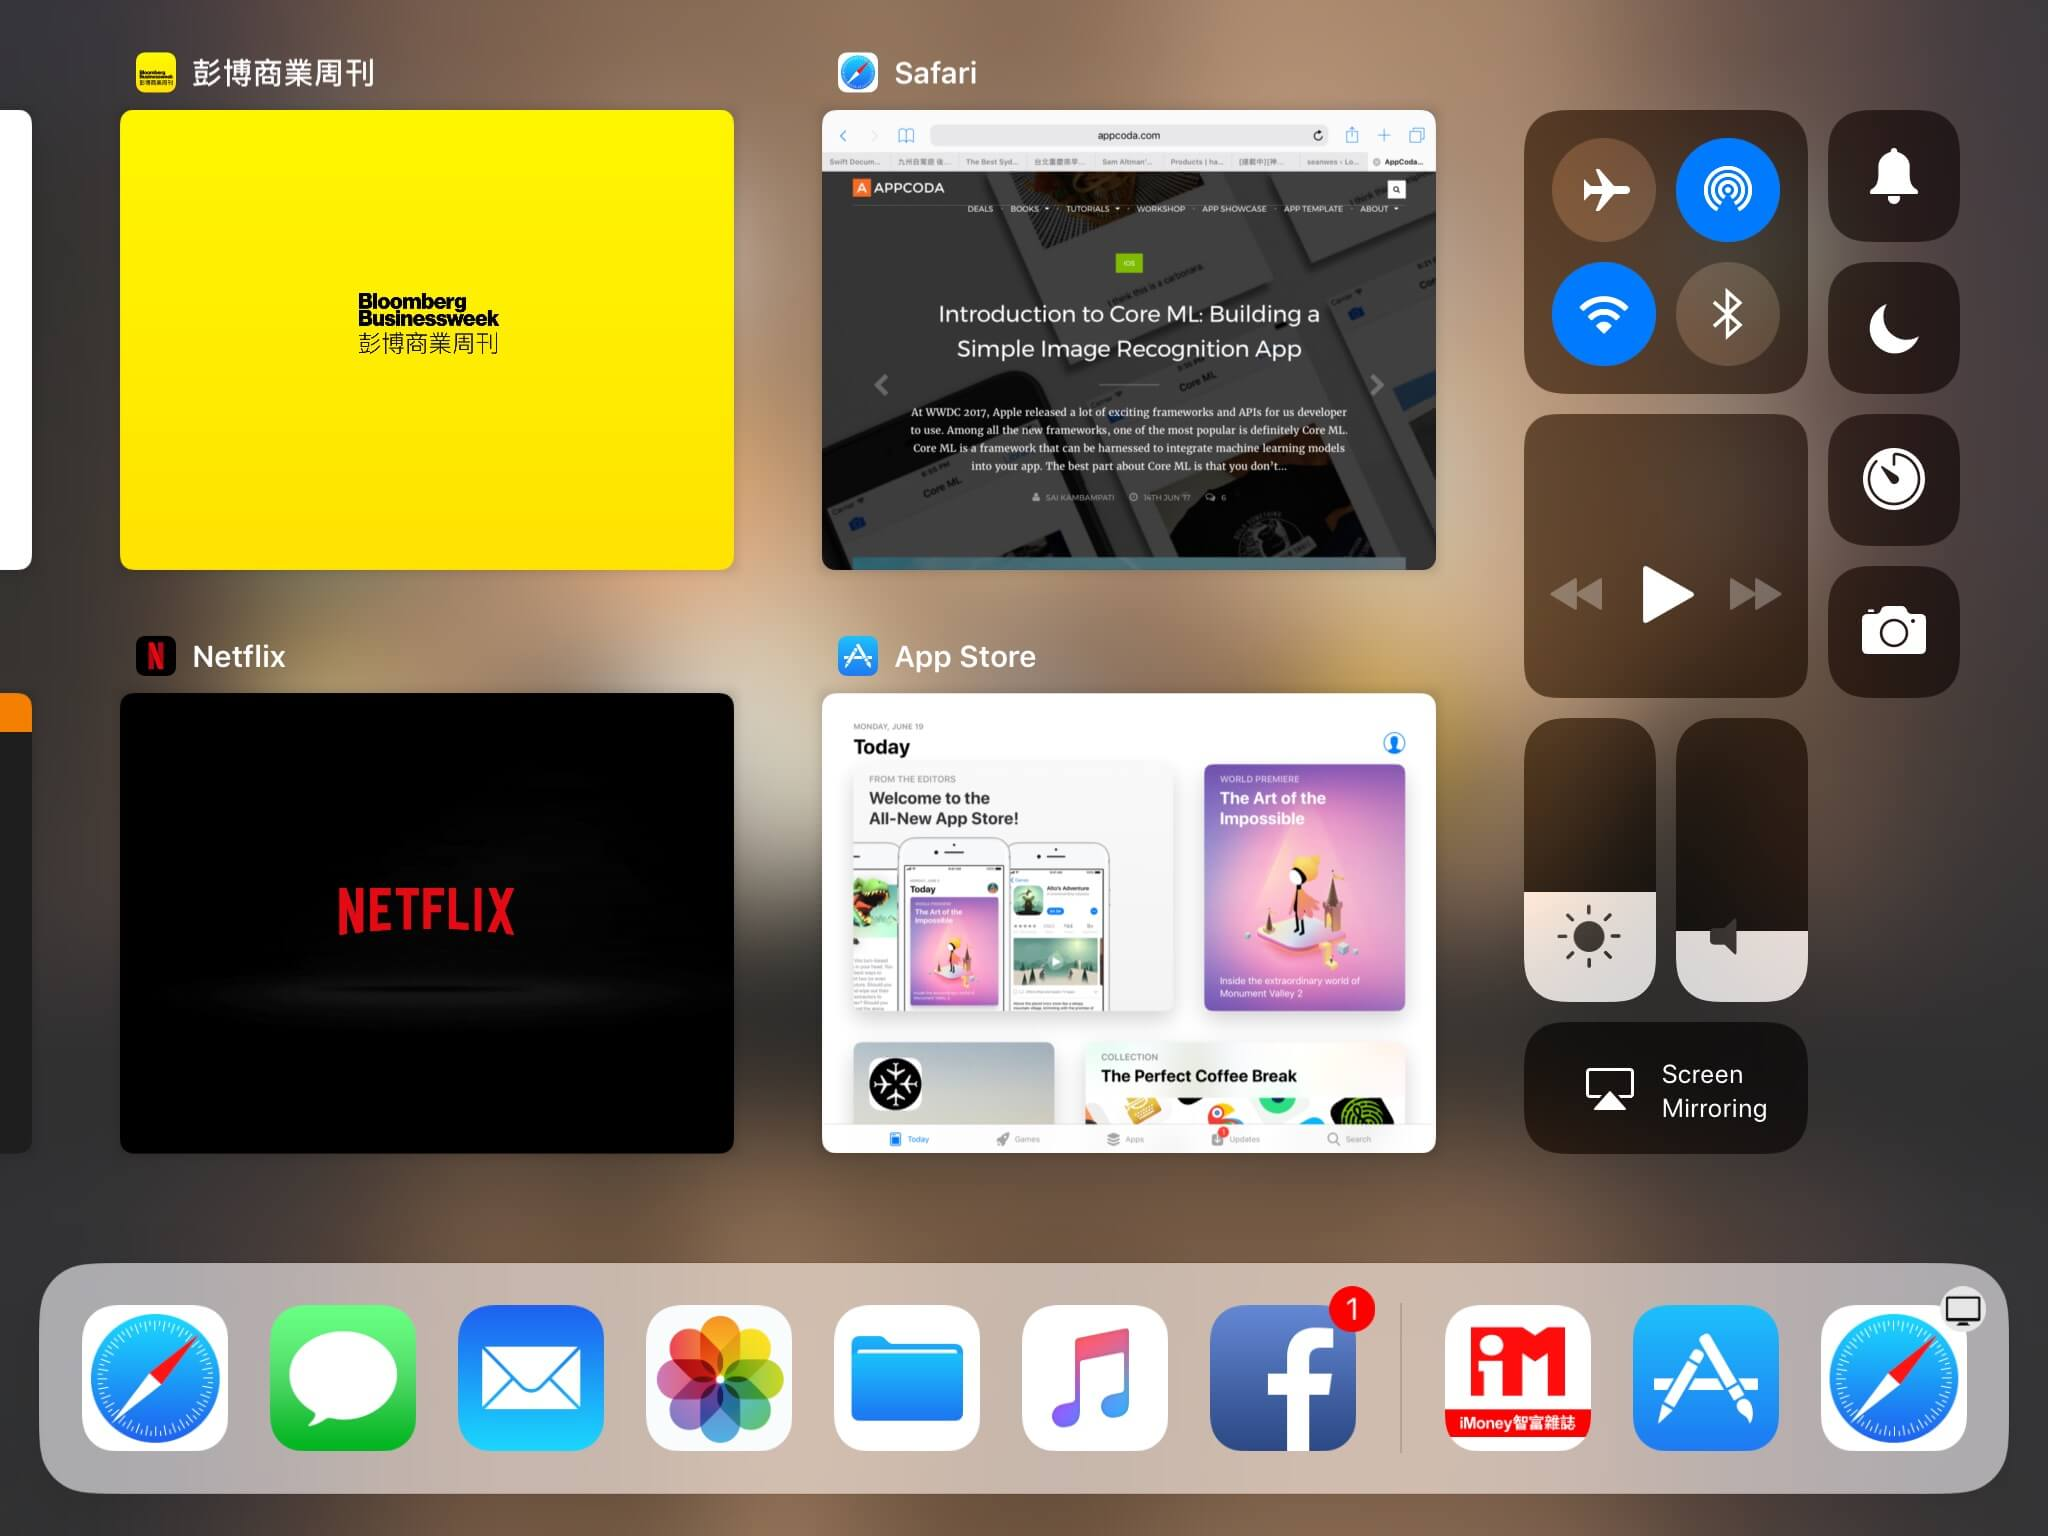 Control Center for iOS 11 on iPad